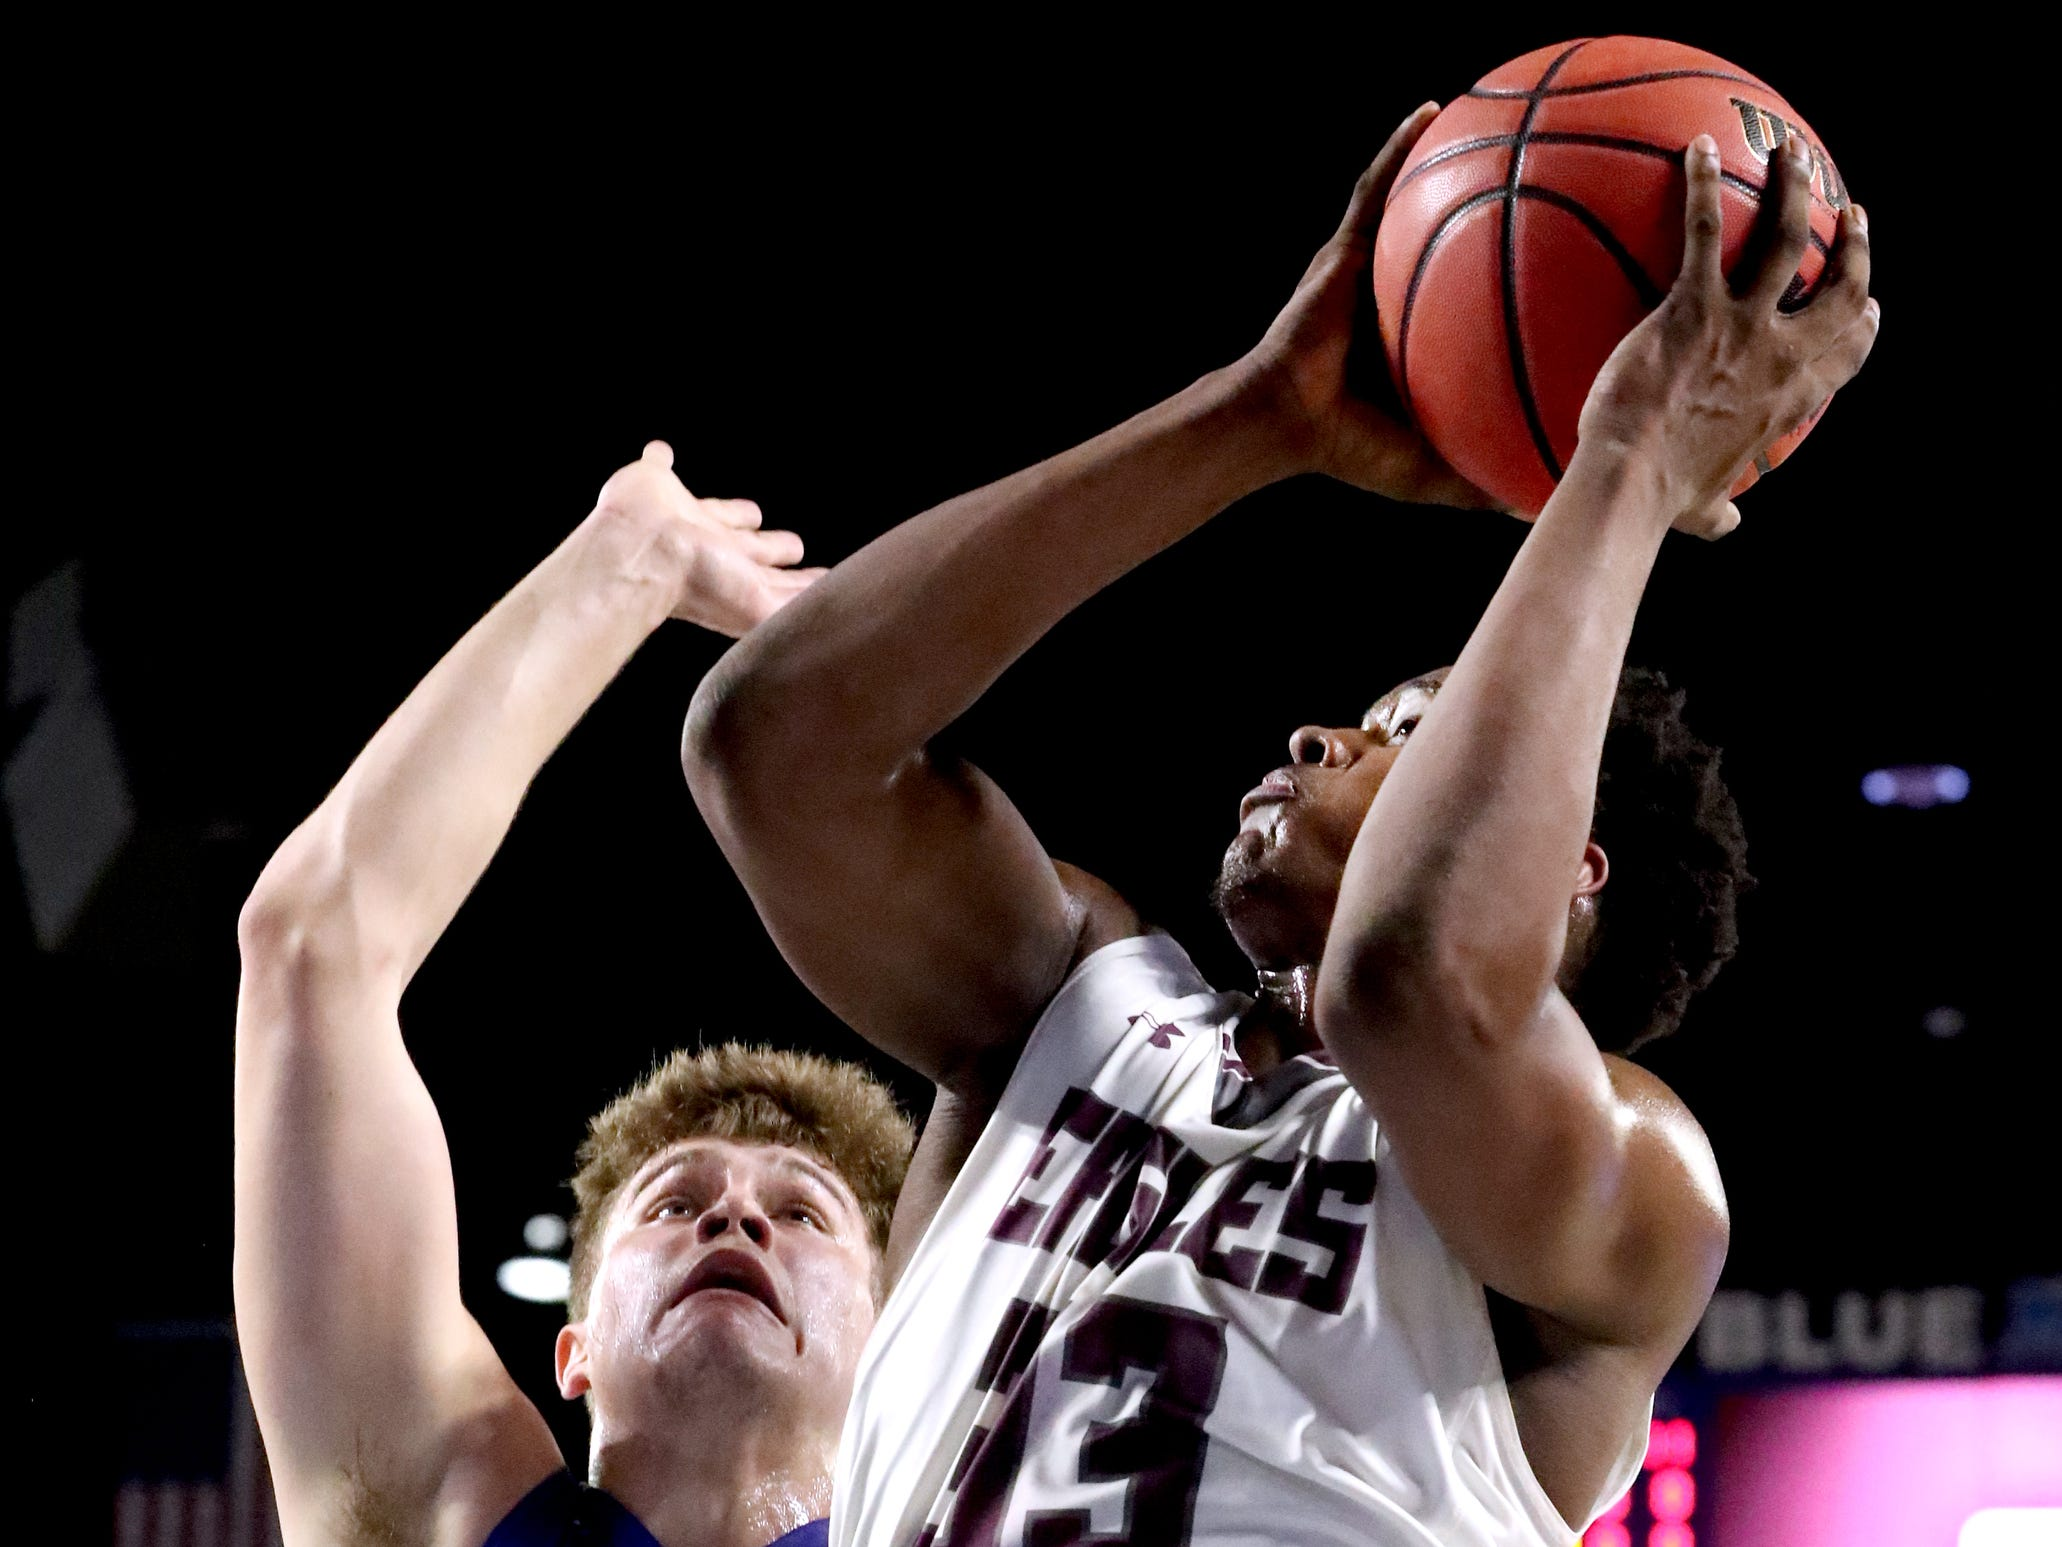 Eagleville's Demarious Stoudemire (33) shoots the ball as Cosby's Austin McKeehan (13) guards him during the quarterfinal round of the TSSAA Class A Boys State Tournament, on Thursday, March 14, 2019, at Murphy Center in Murfreesboro, Tenn.